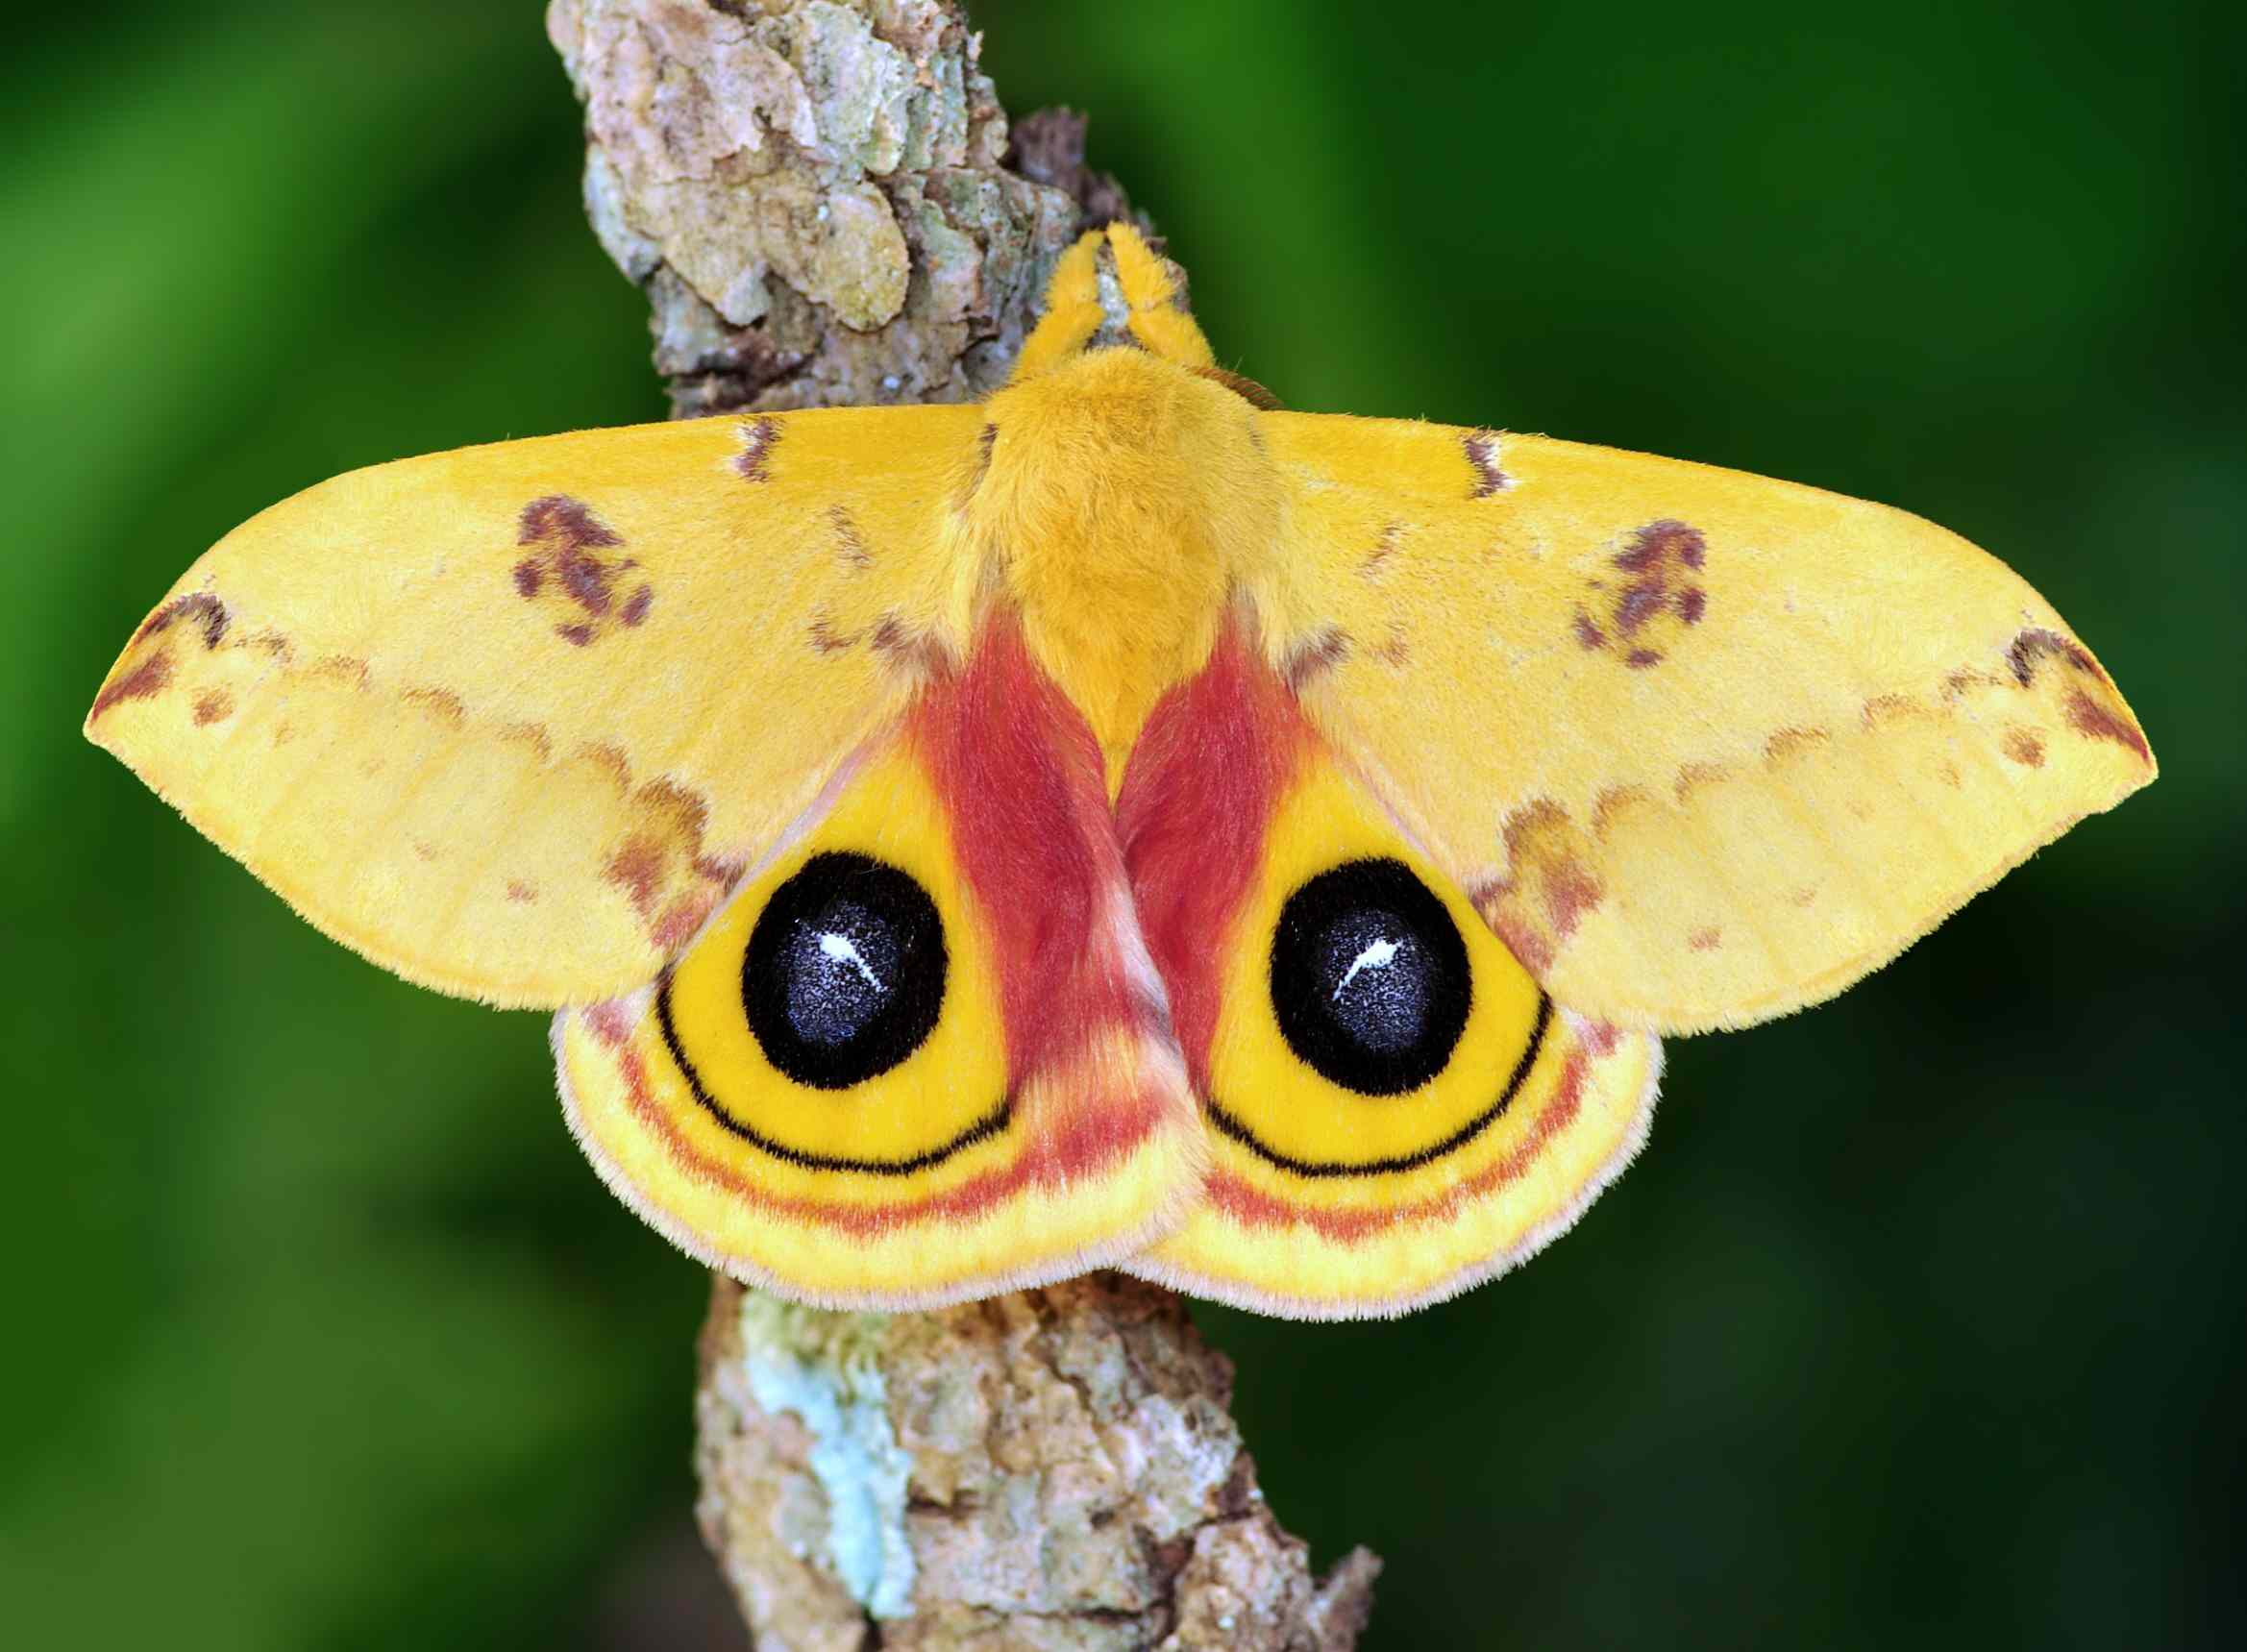 A yellow moth with large black eyespots sits on a branch